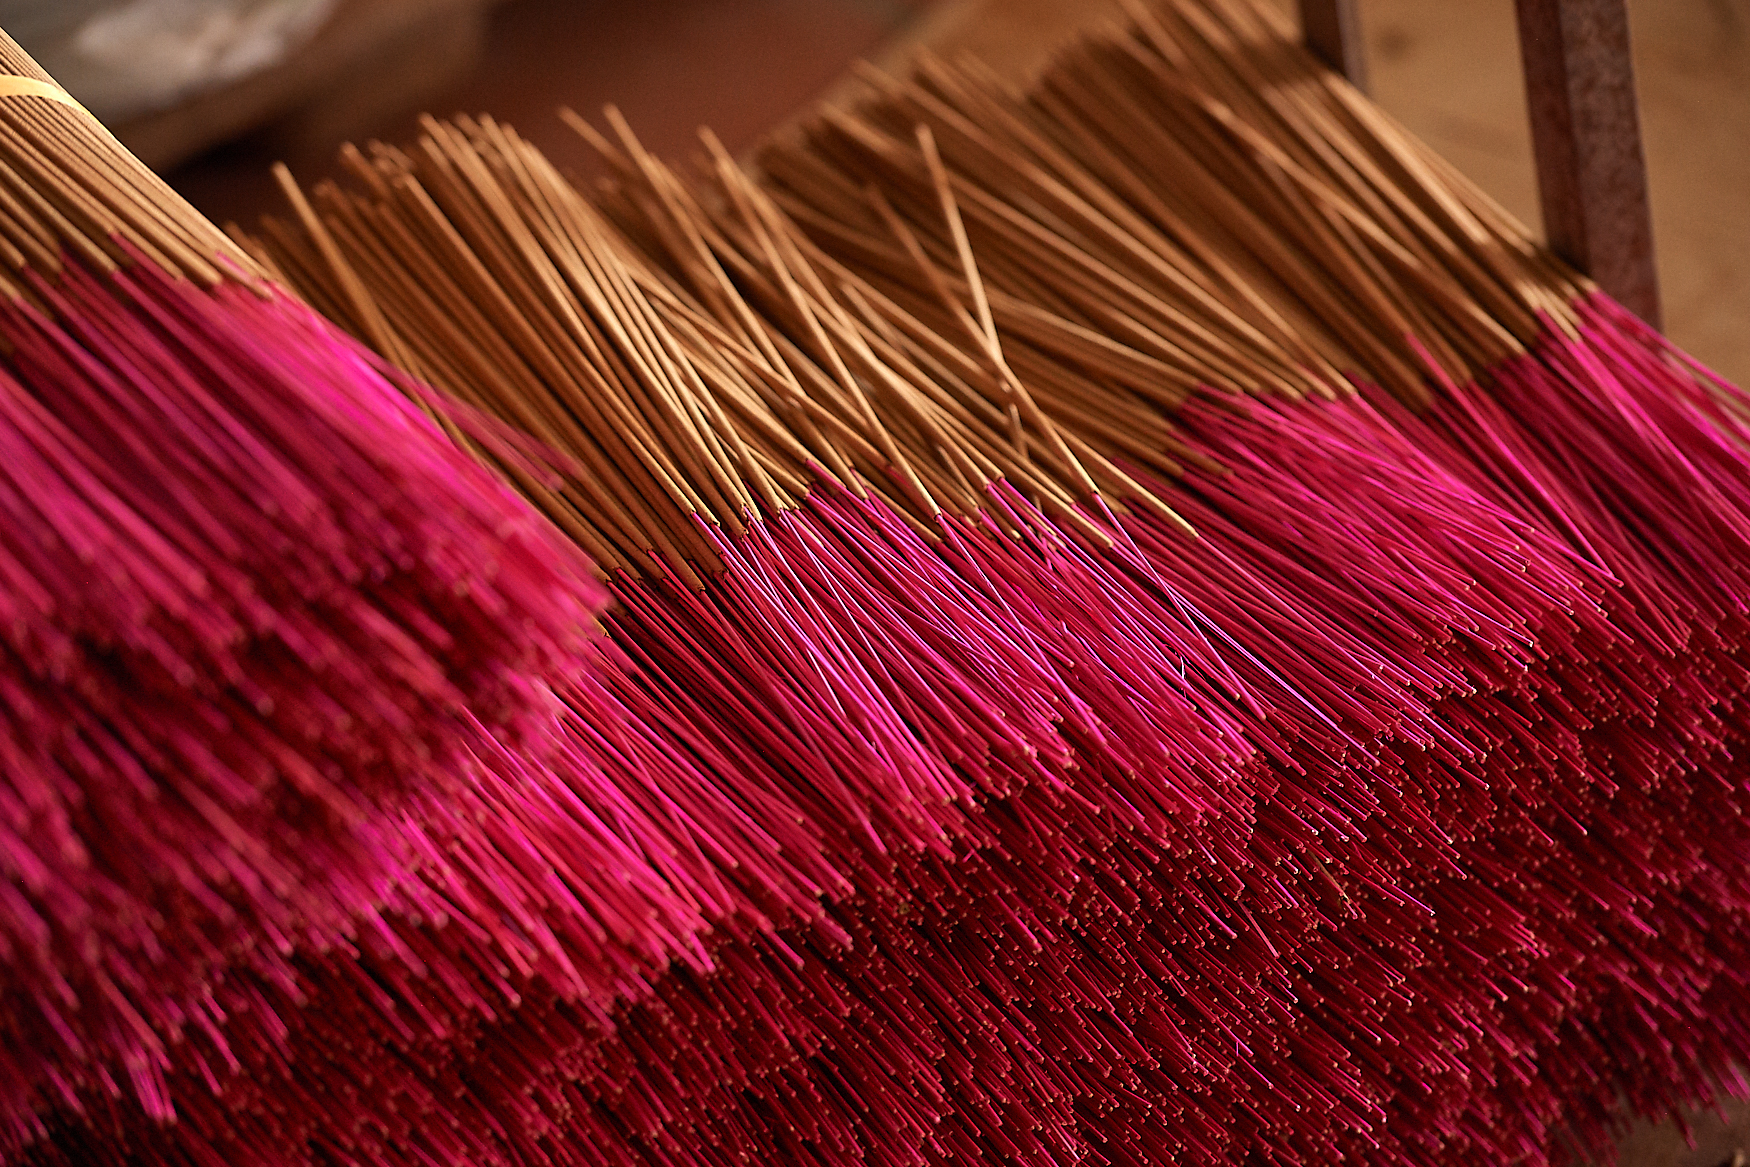 Dried incense sticks are prepared for packaging